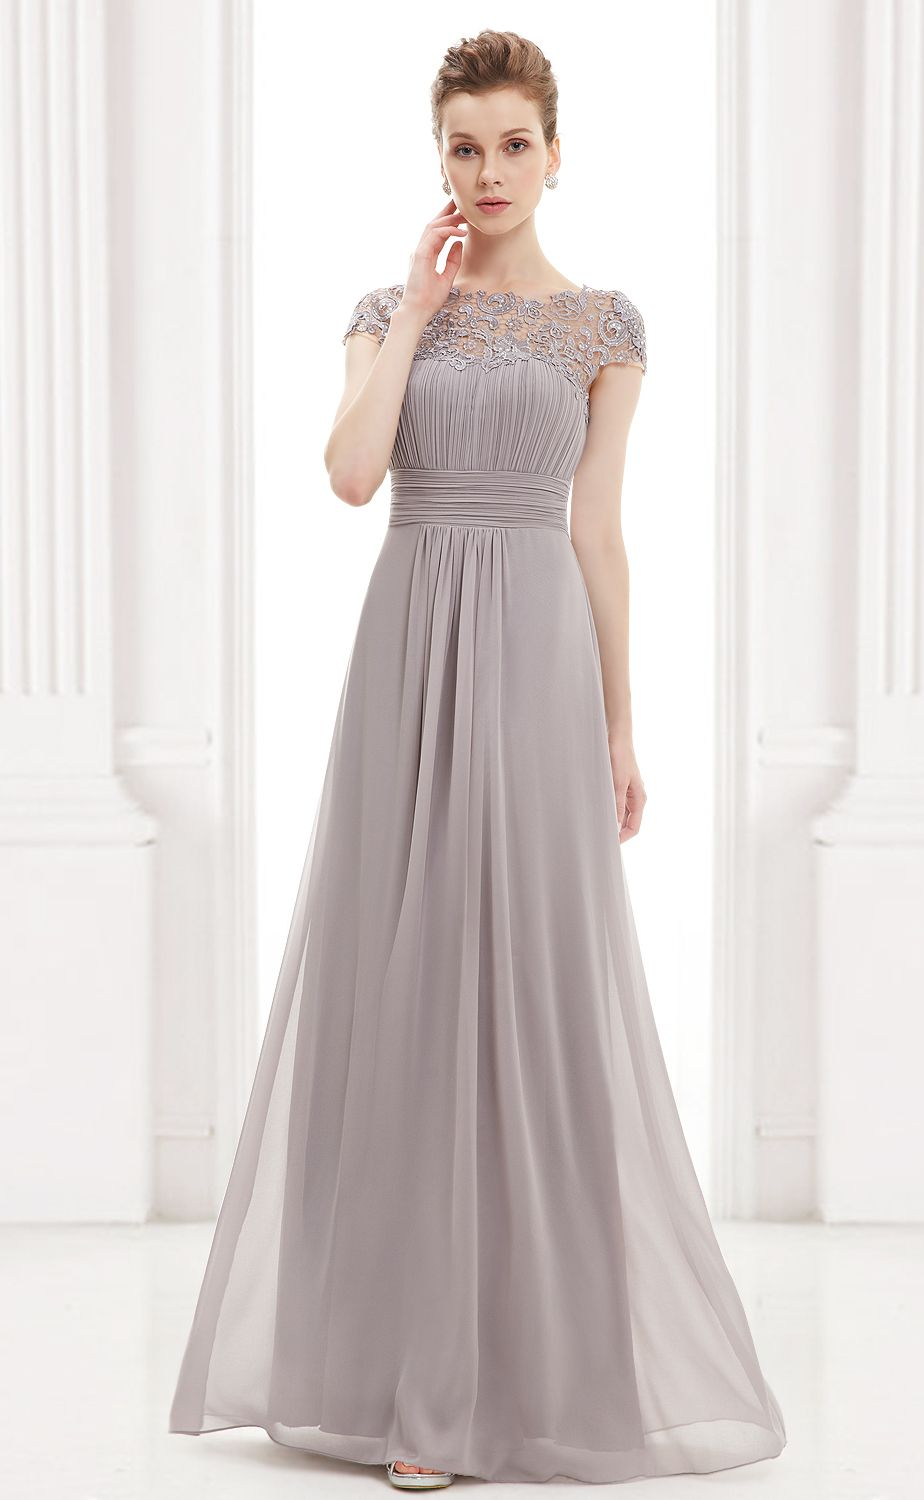 Cap sleeve evening gown with lace gray lace evening gowns and gowns cap sleeve evening gown with lace grey bridesmaid dressesgrey ombrellifo Images